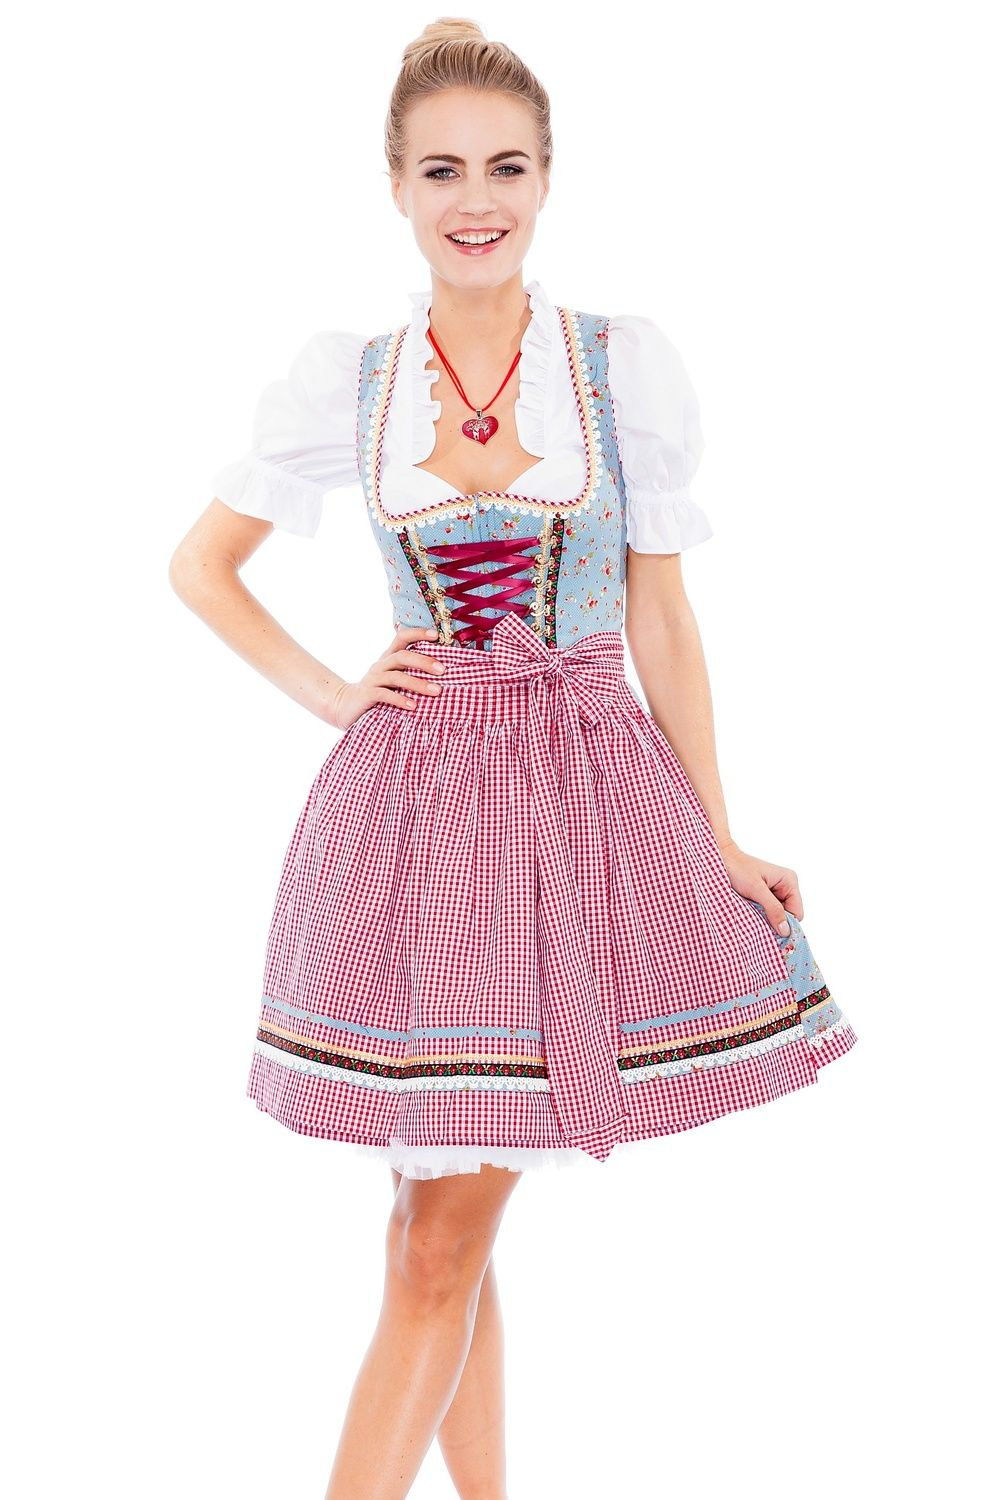 kruger madl ladies dirndl dress 46735 clothing dirndl pinterest dirndl dress. Black Bedroom Furniture Sets. Home Design Ideas